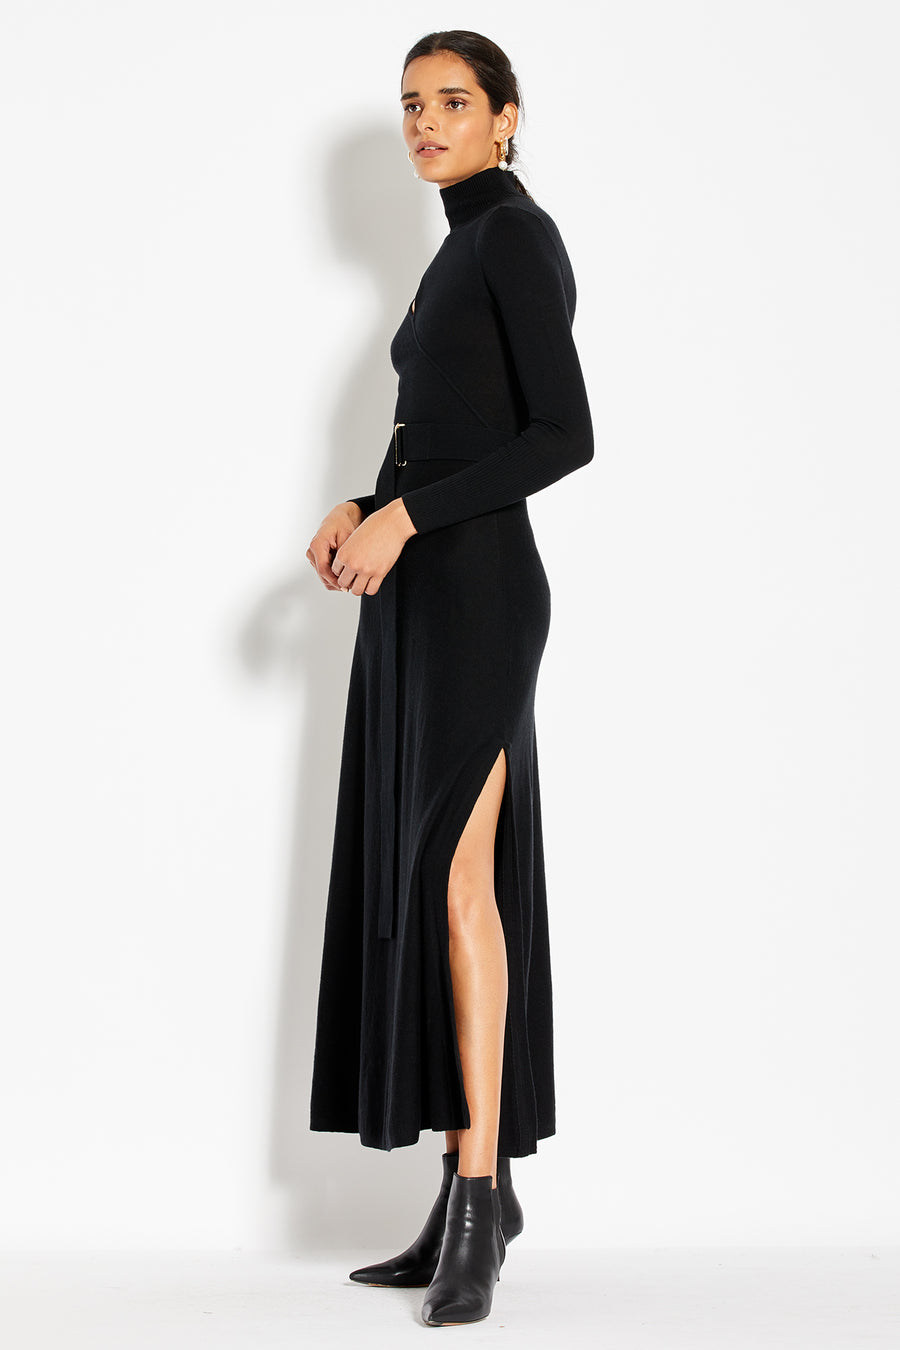 Cross Over Cut Out Dress - Black